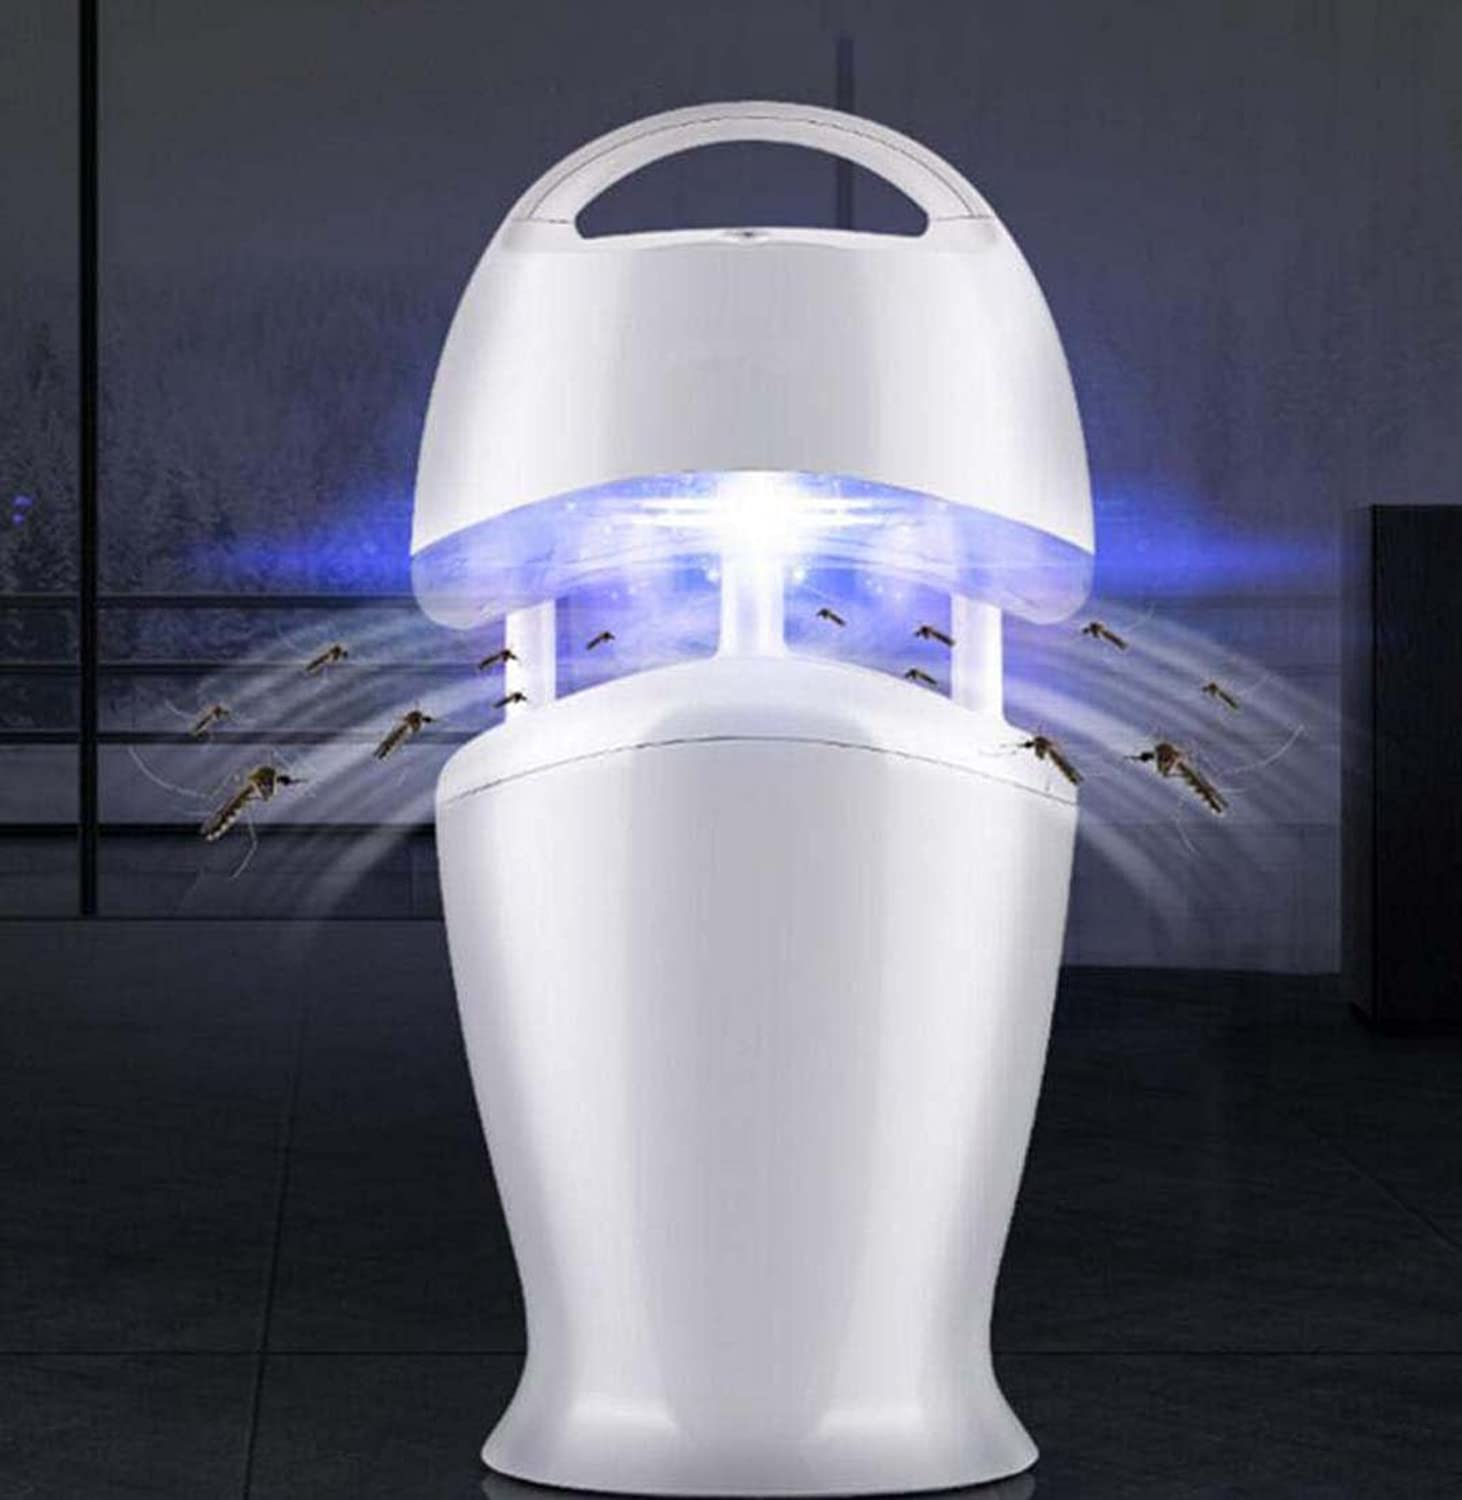 Photocatalyst Mosquito Killer, LED Smart Light Control USB Mosquito Killer, Home Pregnant & Baby Mosquito Killer 24.0 cm  19.5 cm  43.5